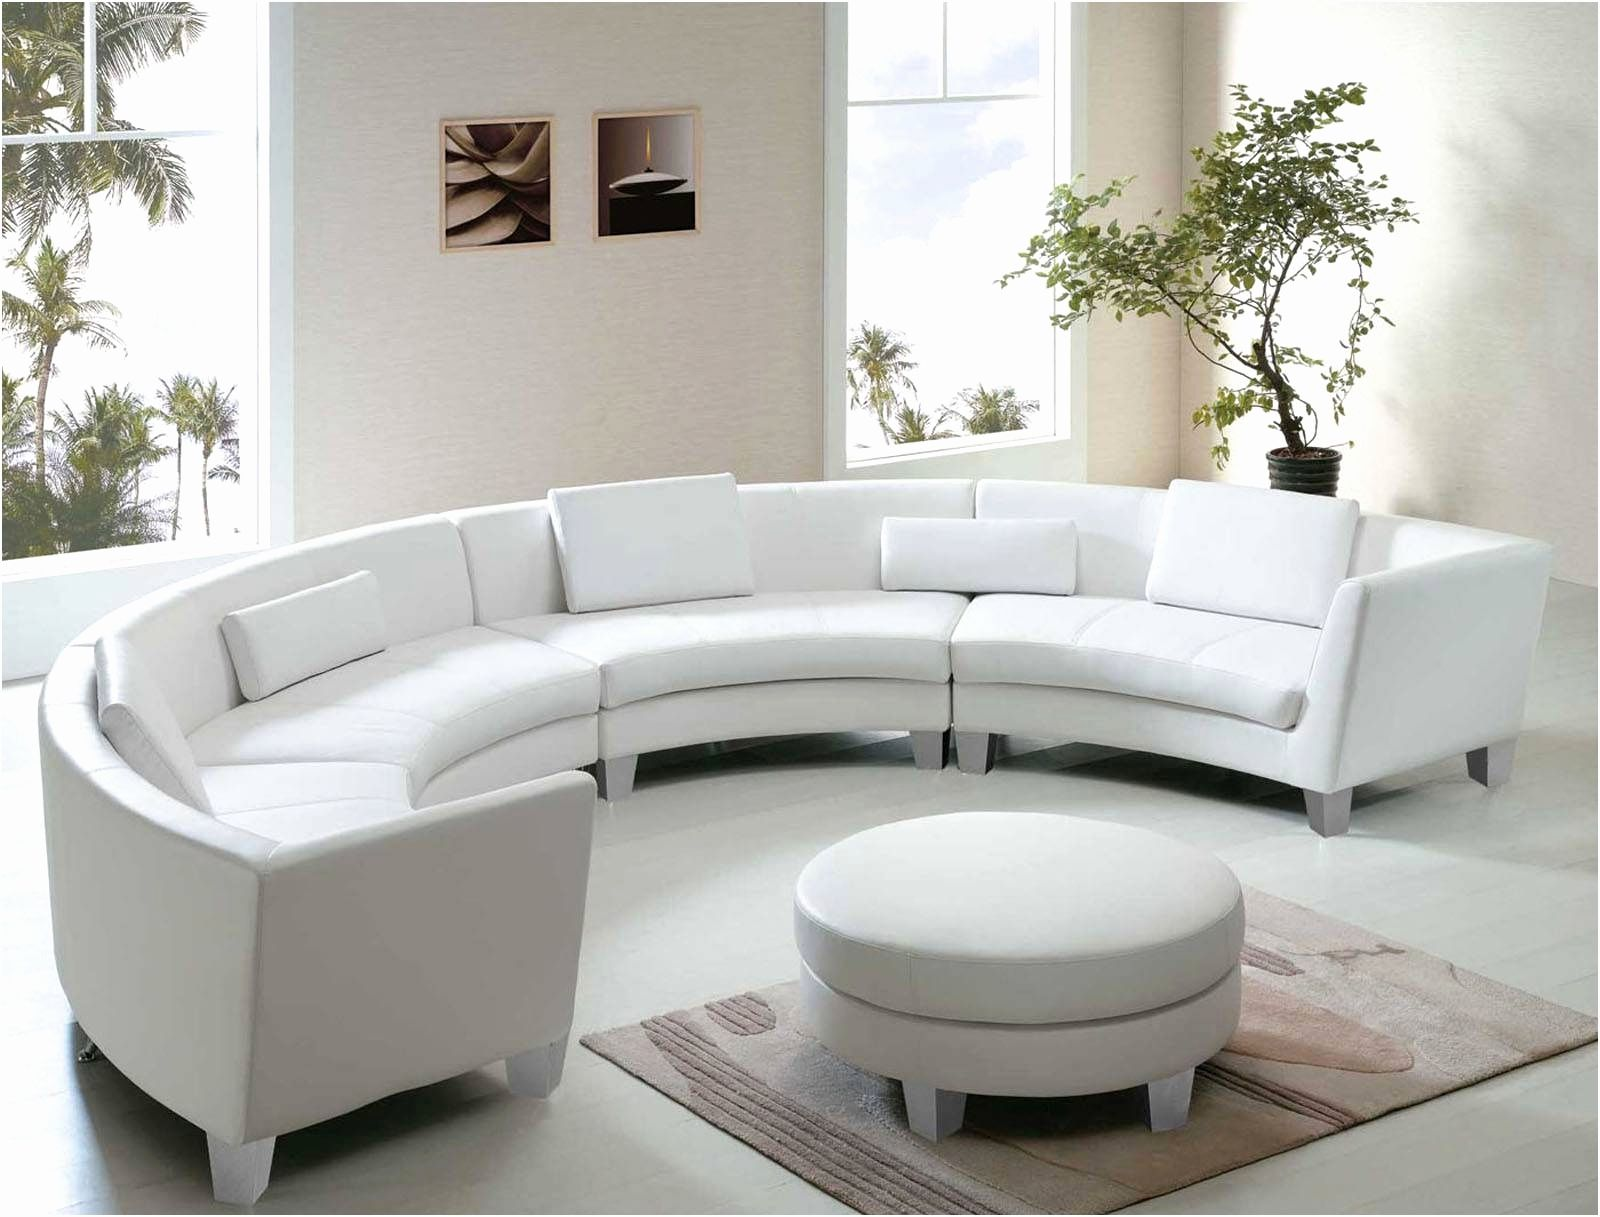 sofas regarding your semi living house couch sectional room spectacular sofa for circle concept round gray small